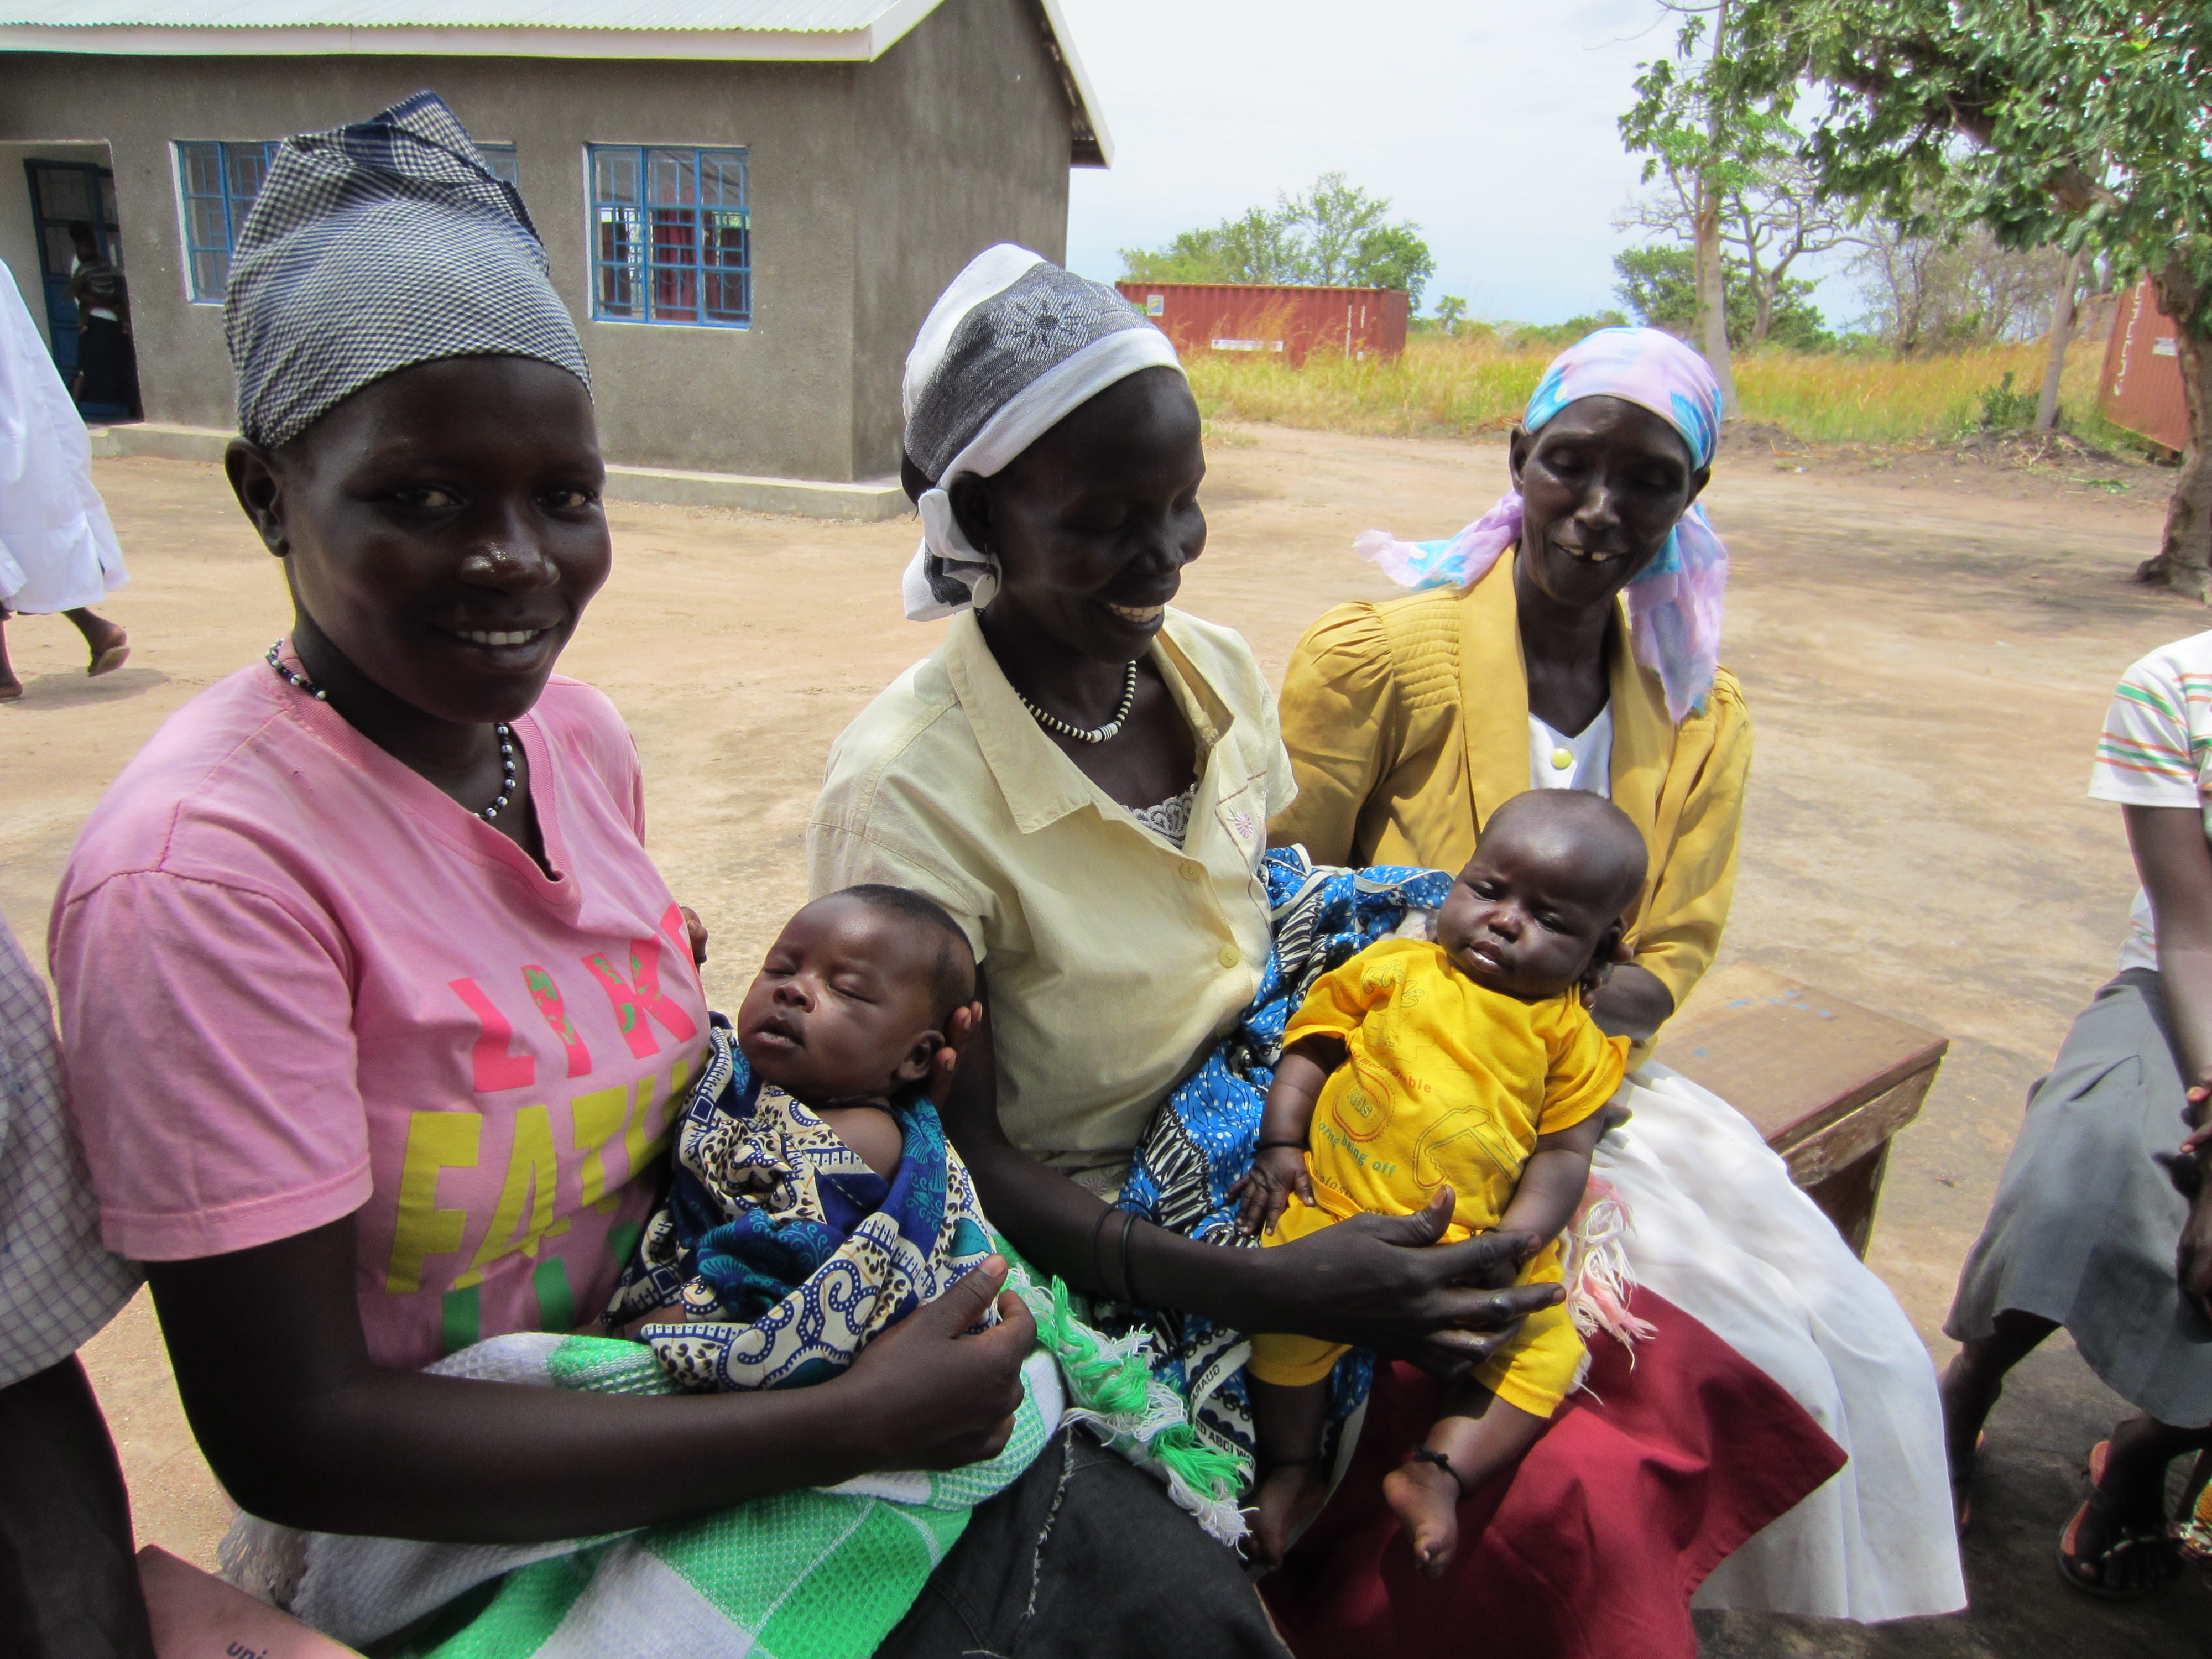 Mothers Give Birth Safely Amid South Sudan's Conflict